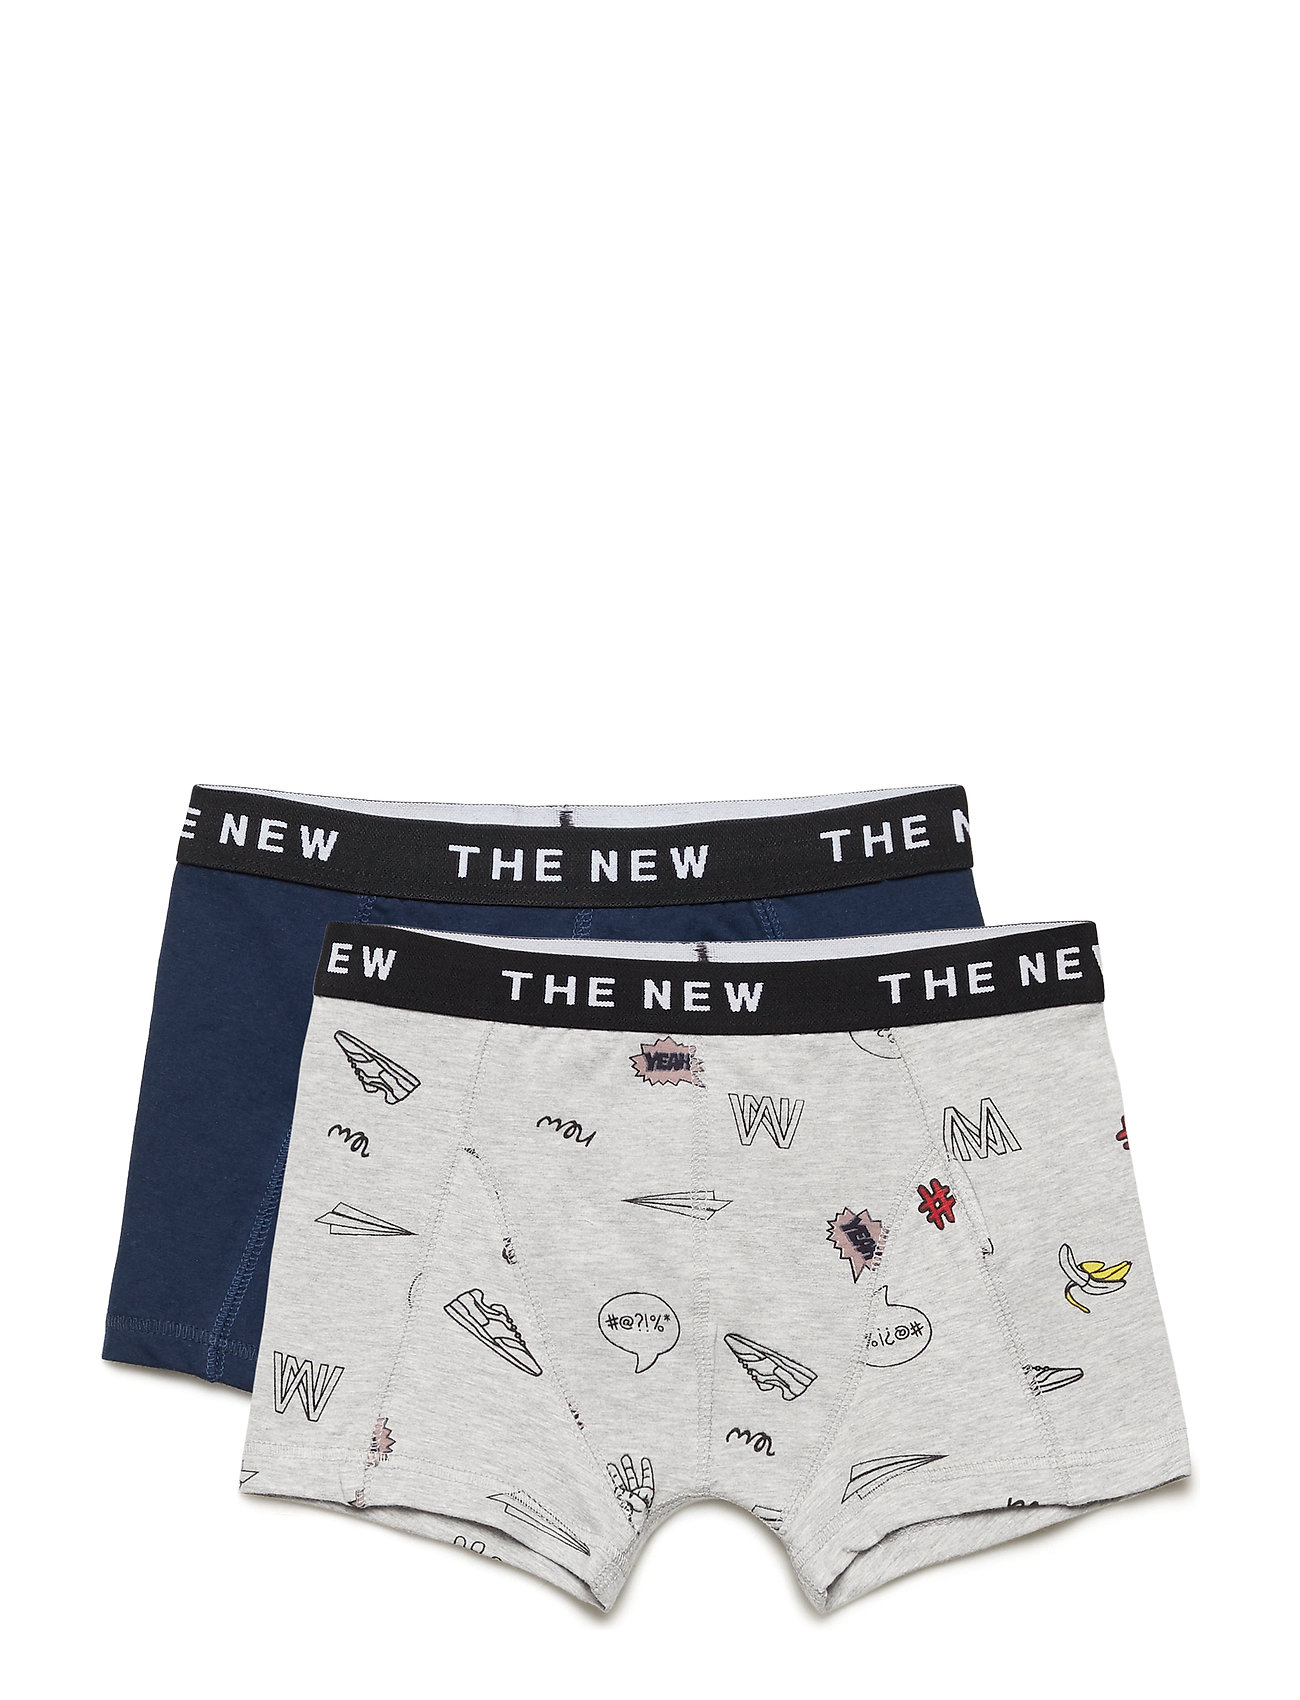 The New THE NEW BOXERS